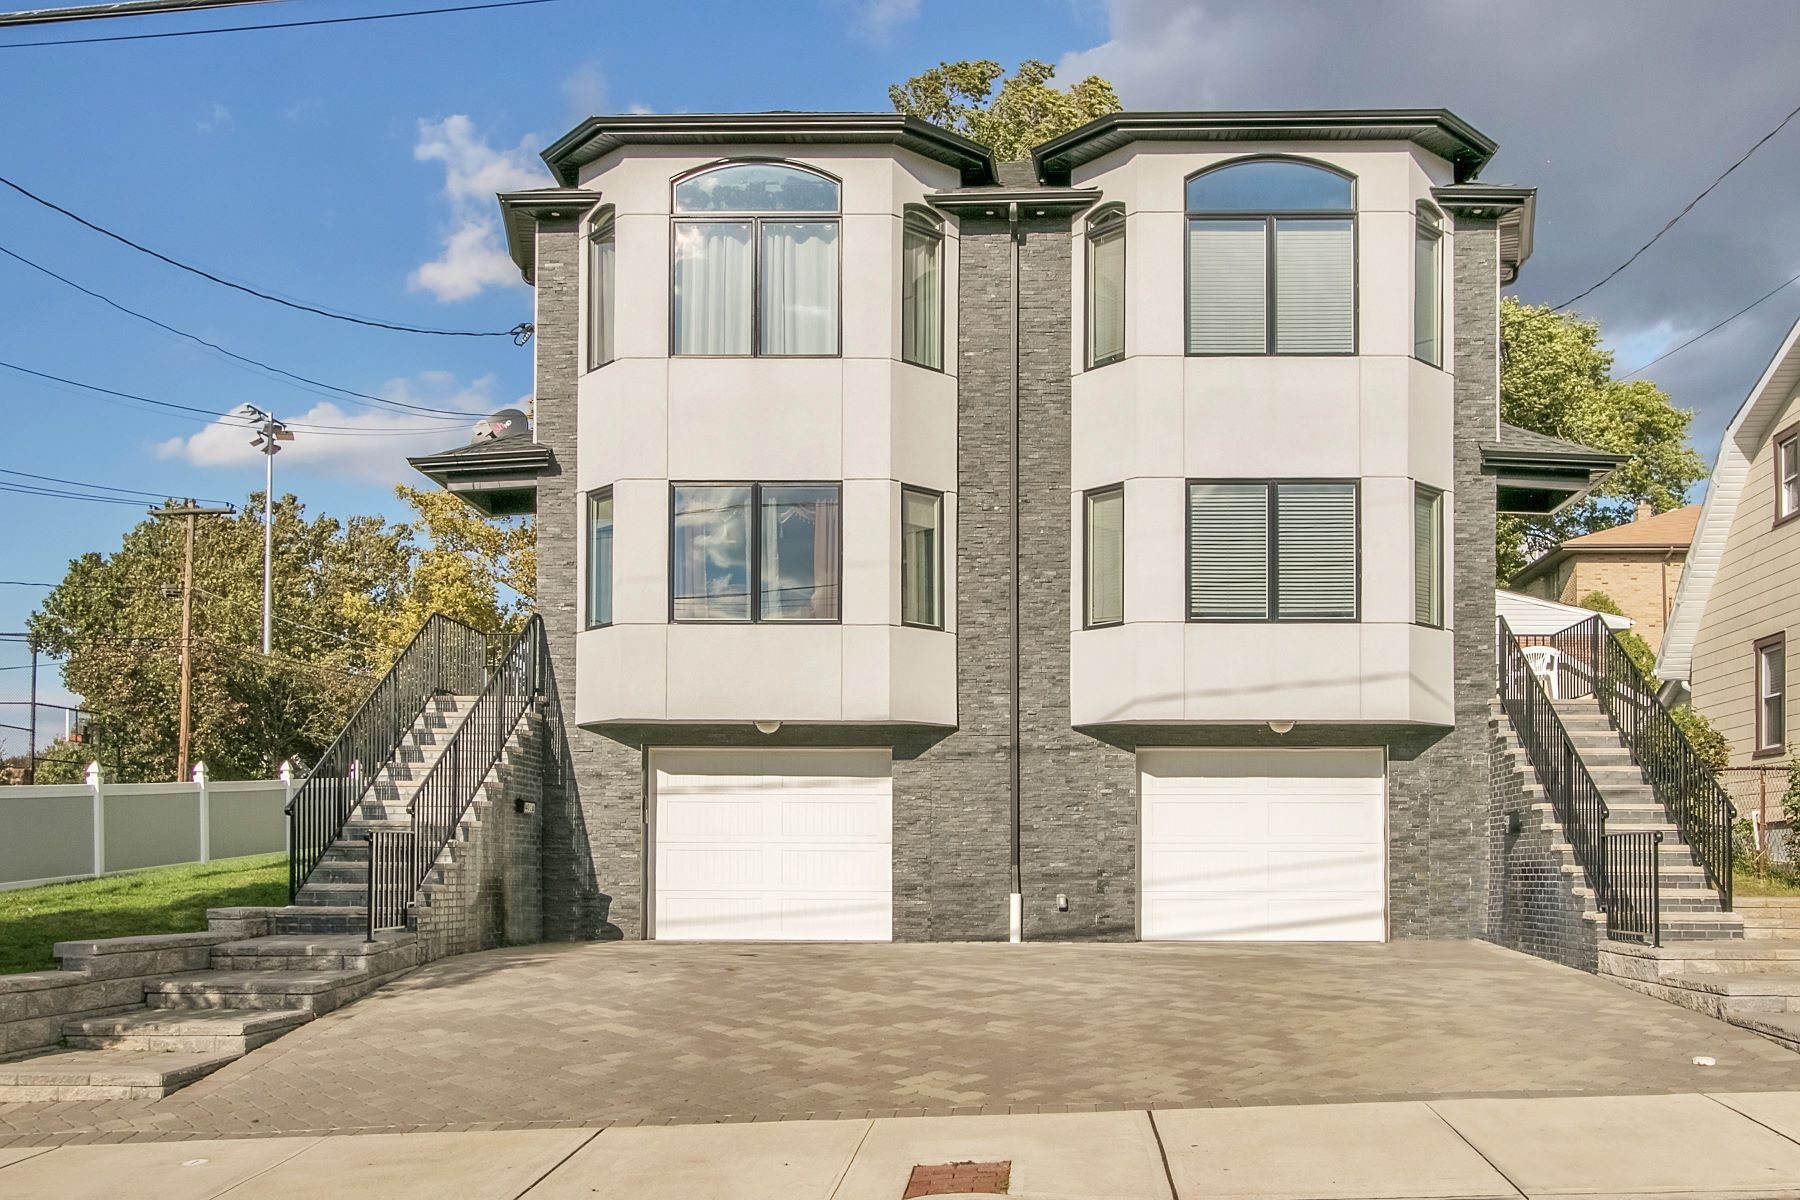 Multi-Family Home for Sale at Pristine Two Family Home 401 Kennedy Drive, Fairview, New Jersey 07022 United States